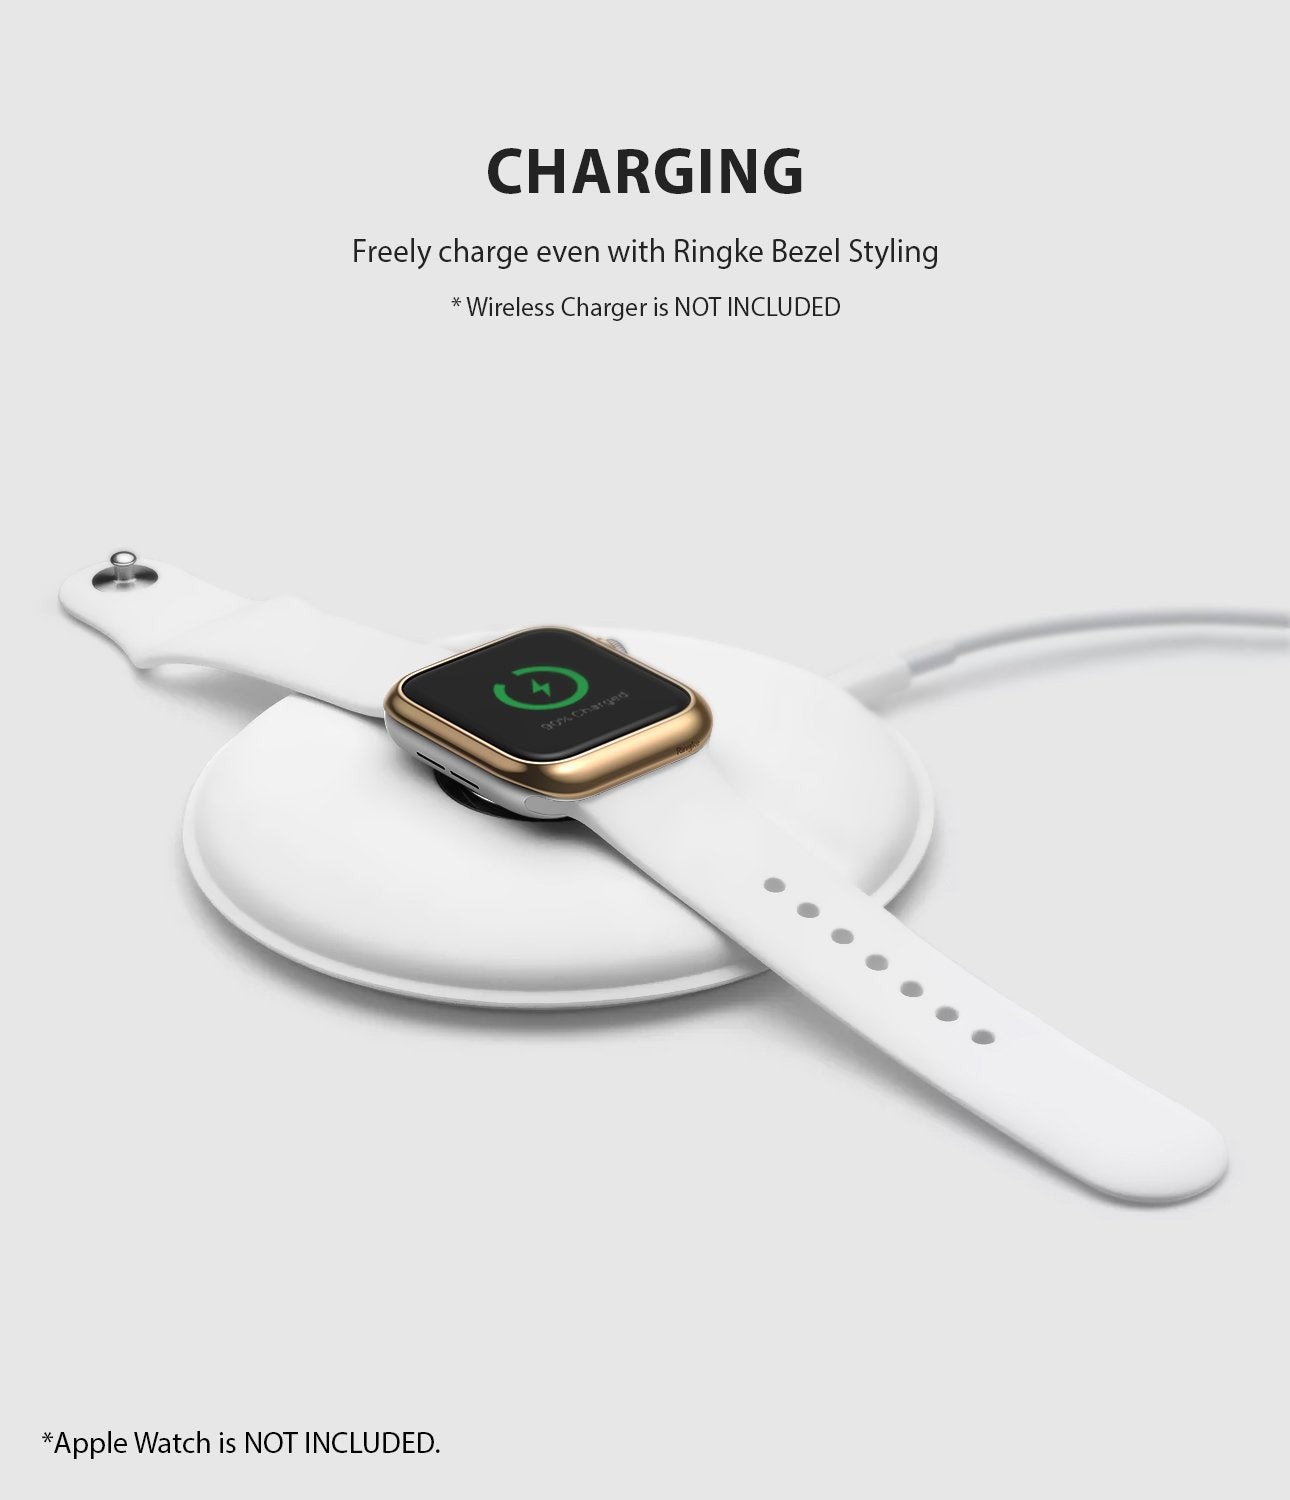 ringke bezel styling 40-05 glossy gold stainless steel on apple watch series 5 / 4 40mm wireless charging